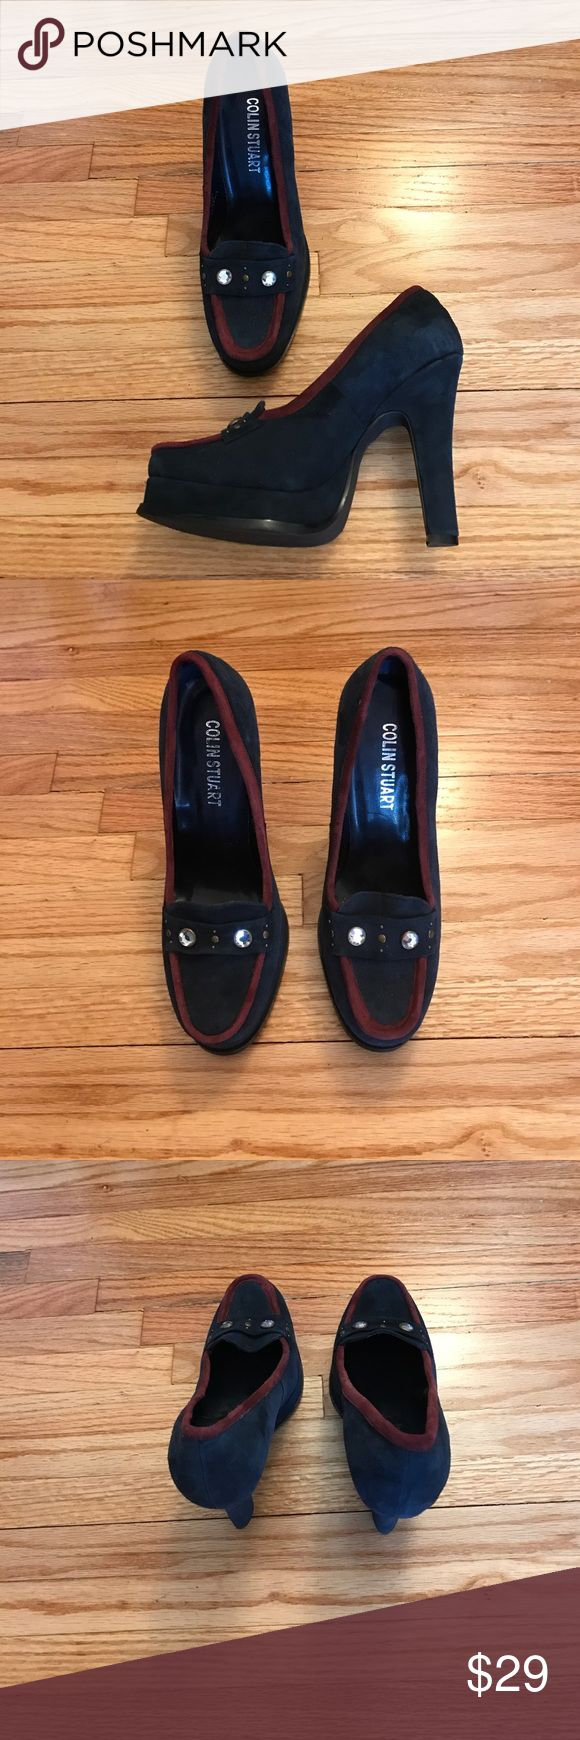 NWOT Colin Stuart Heels NWOT Fab Platform Heels By Colin Stuart. Leather upper. Size:7.5. Color is like a Teal with burgundy trim. Front of shoes show case bronze grommets & 2 Faux clear stones. Great shoe for fall/winter! NO TRADES. Colin Stuart Shoes Heels